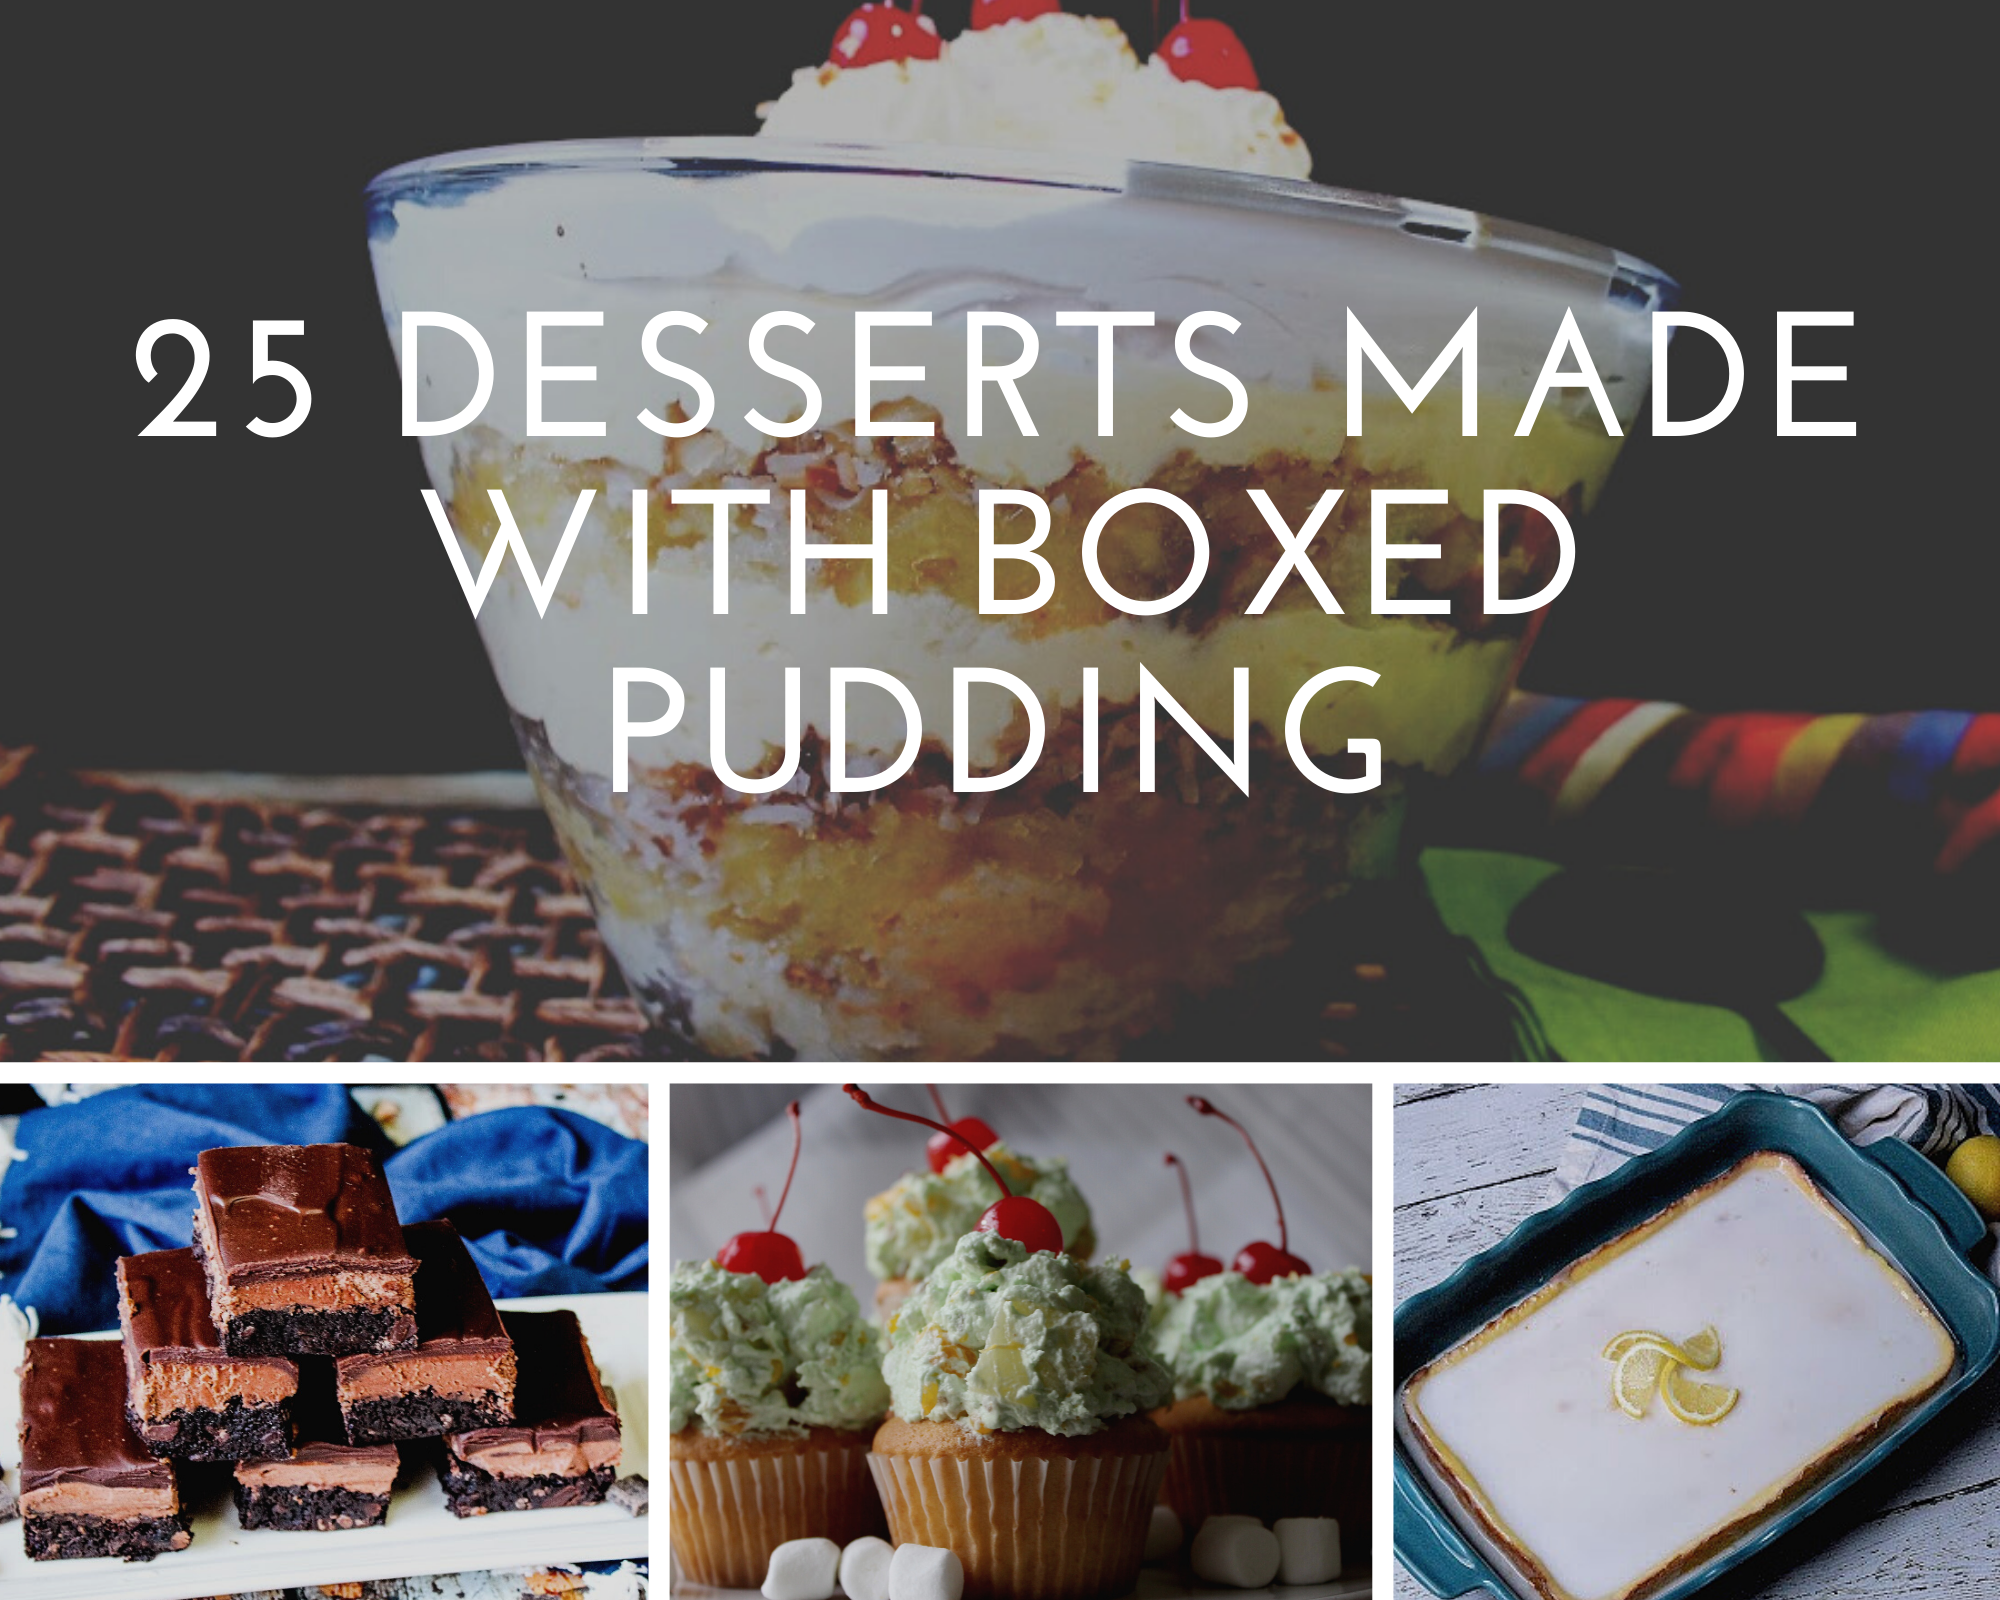 Desserts made with boxed pudding